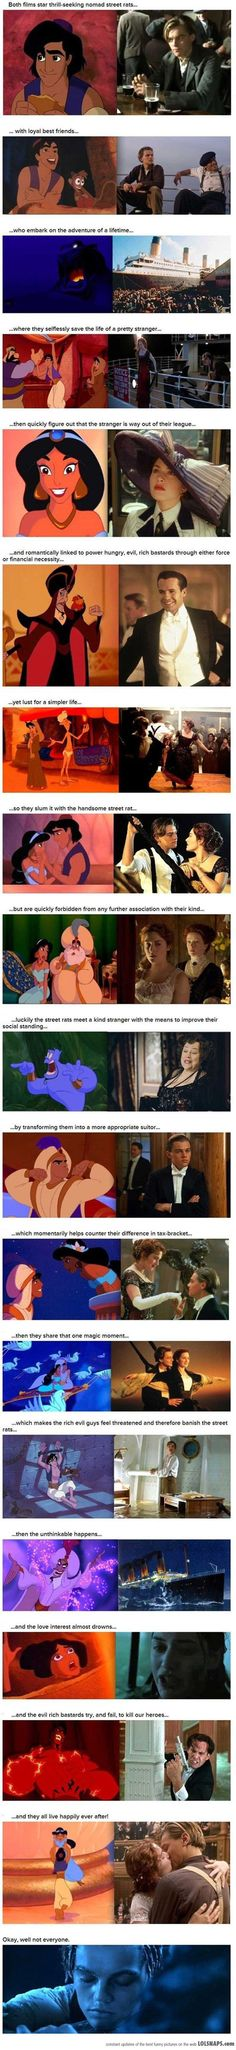 Aladdin vs Titanic. I laughed way too hard at this one...